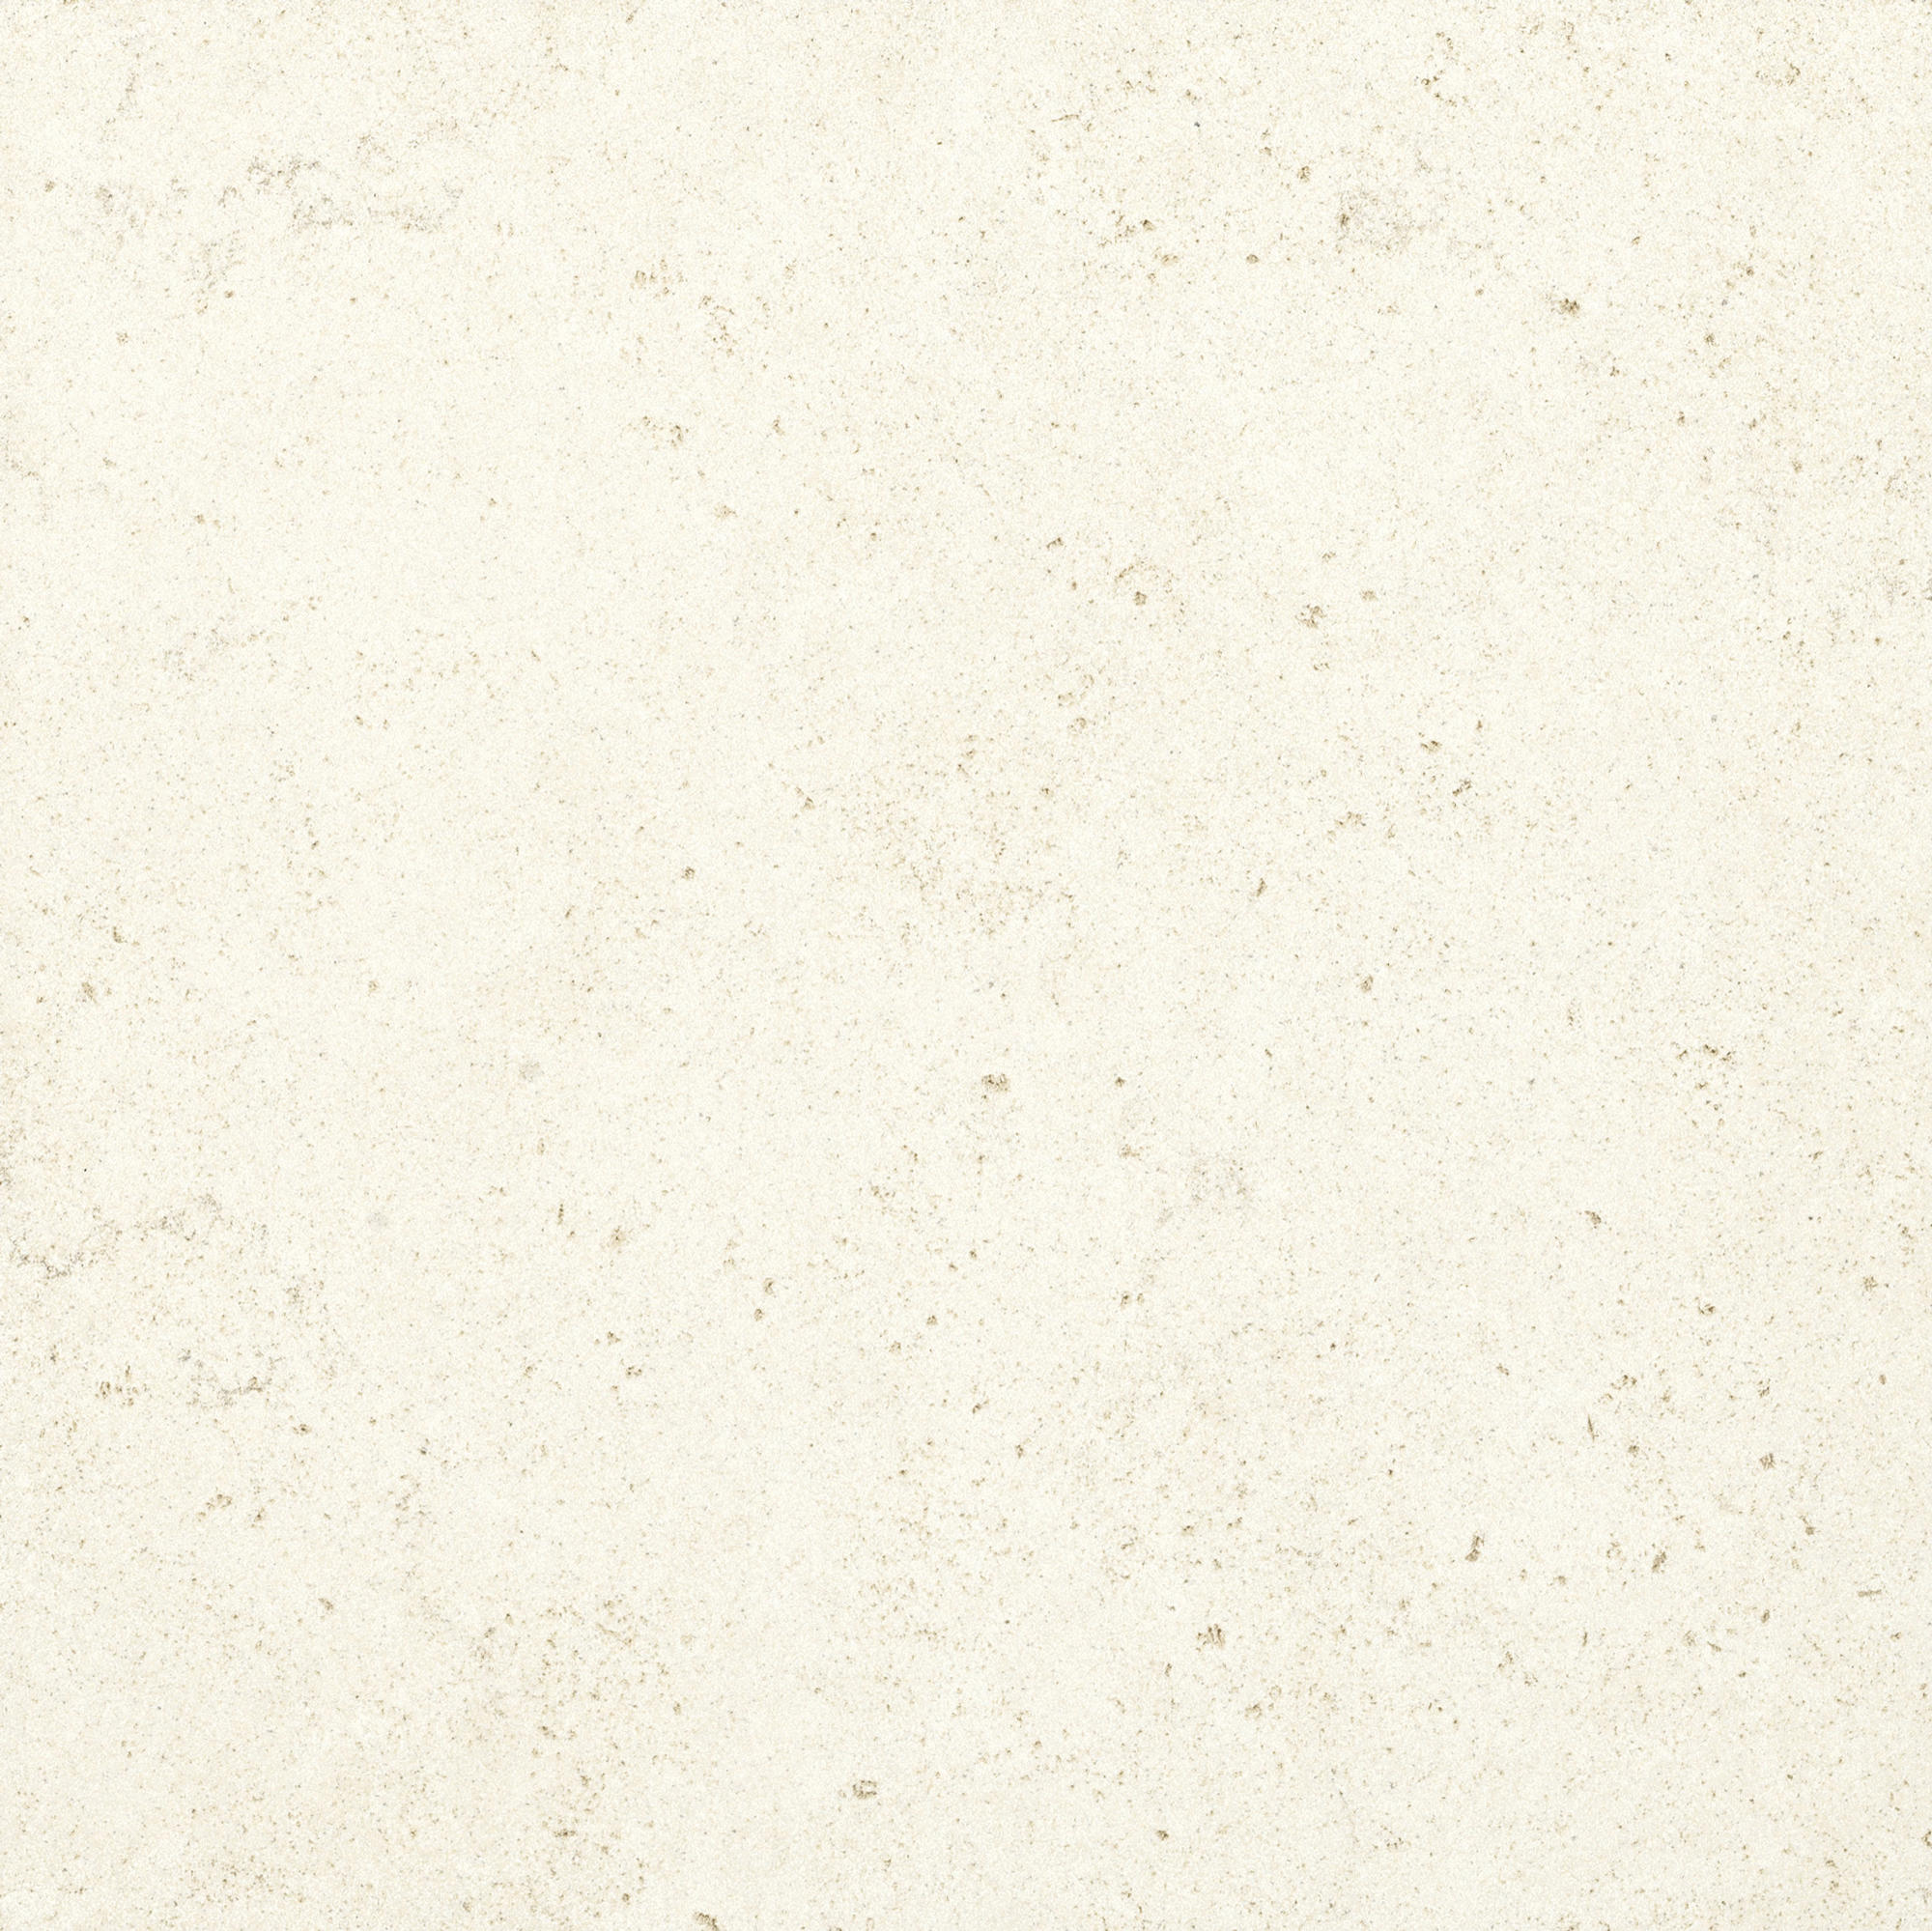 Buxy Corail Blanc Ceramic Tiles From Cotto D Este Architonic